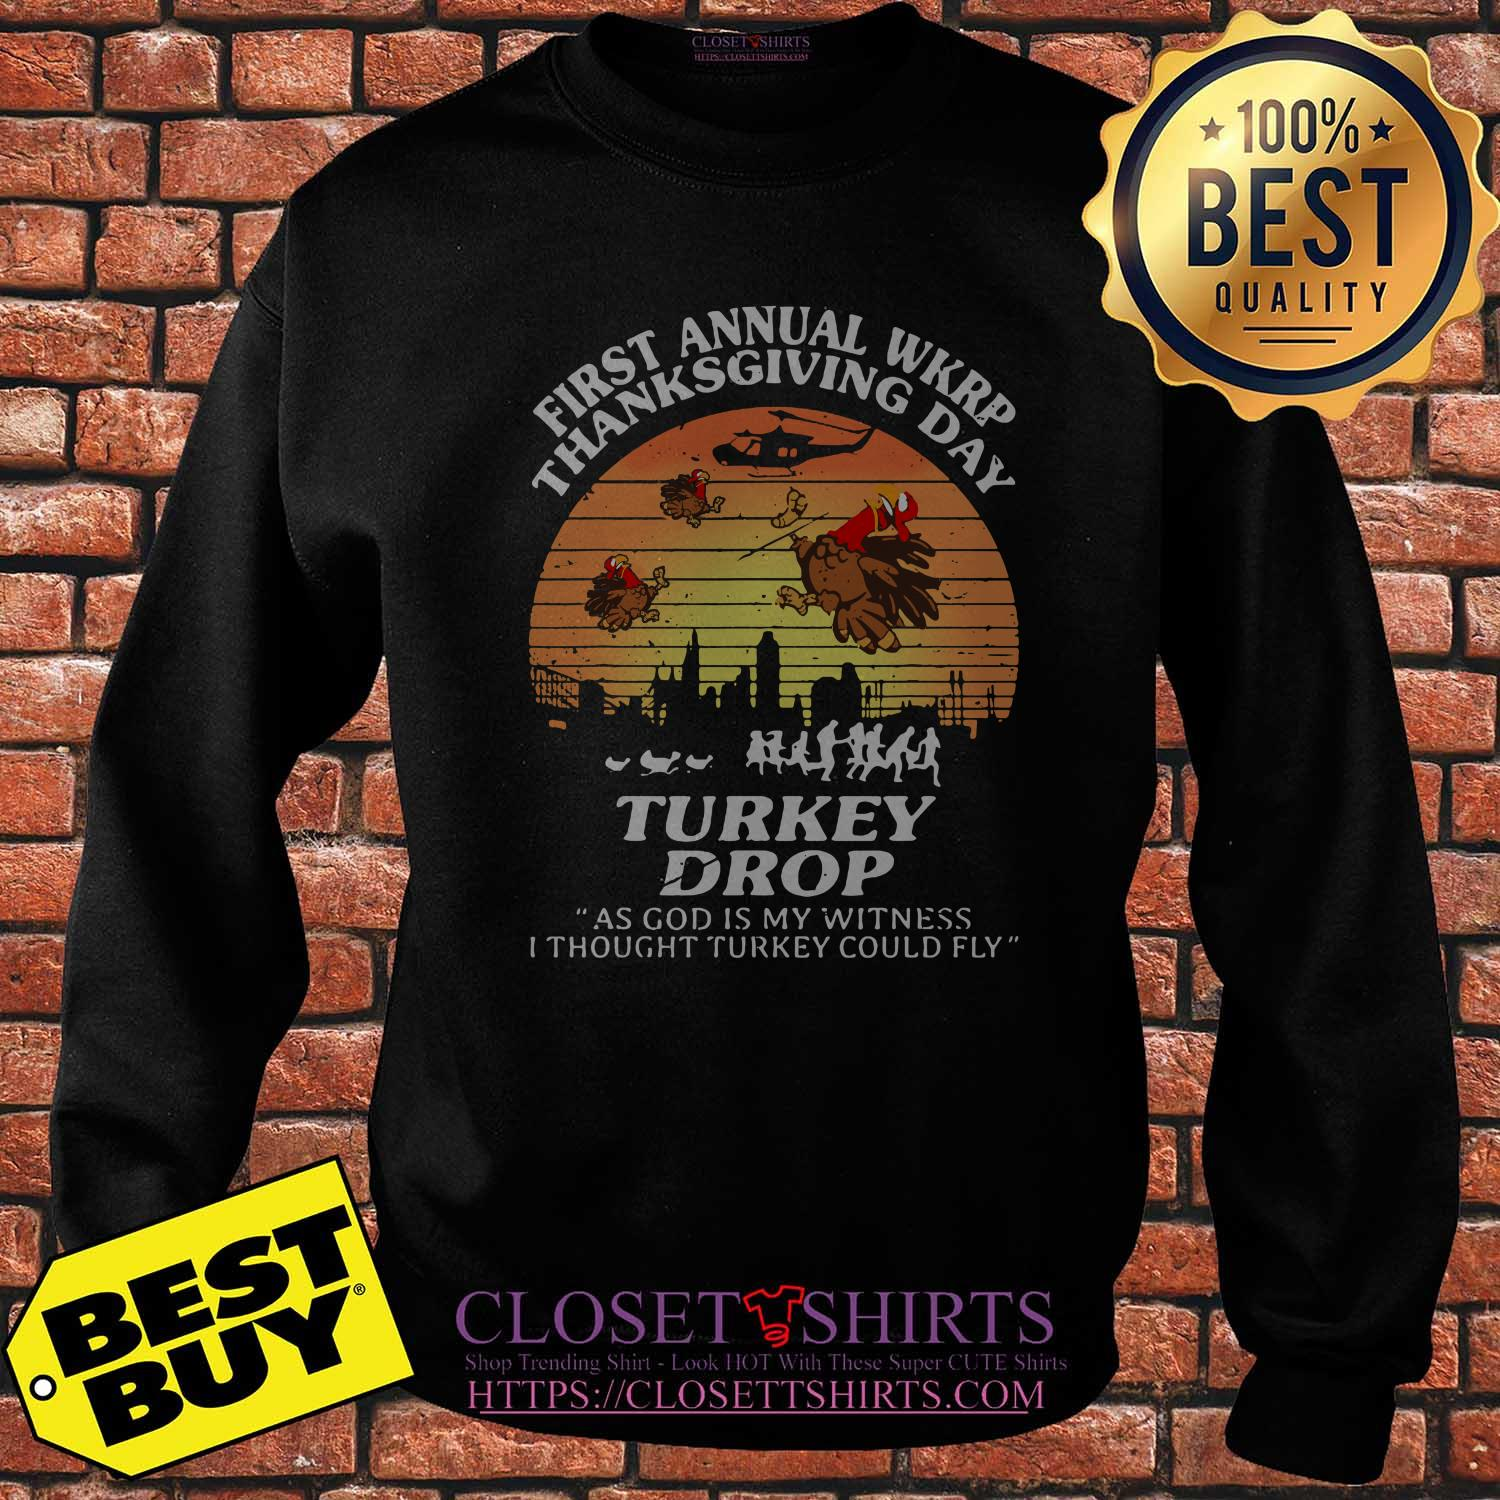 First Annual Wkrp Thanksgiving Day Turkey Drop God Witness Thought Turkeys Fly Vintage Sweatshirt